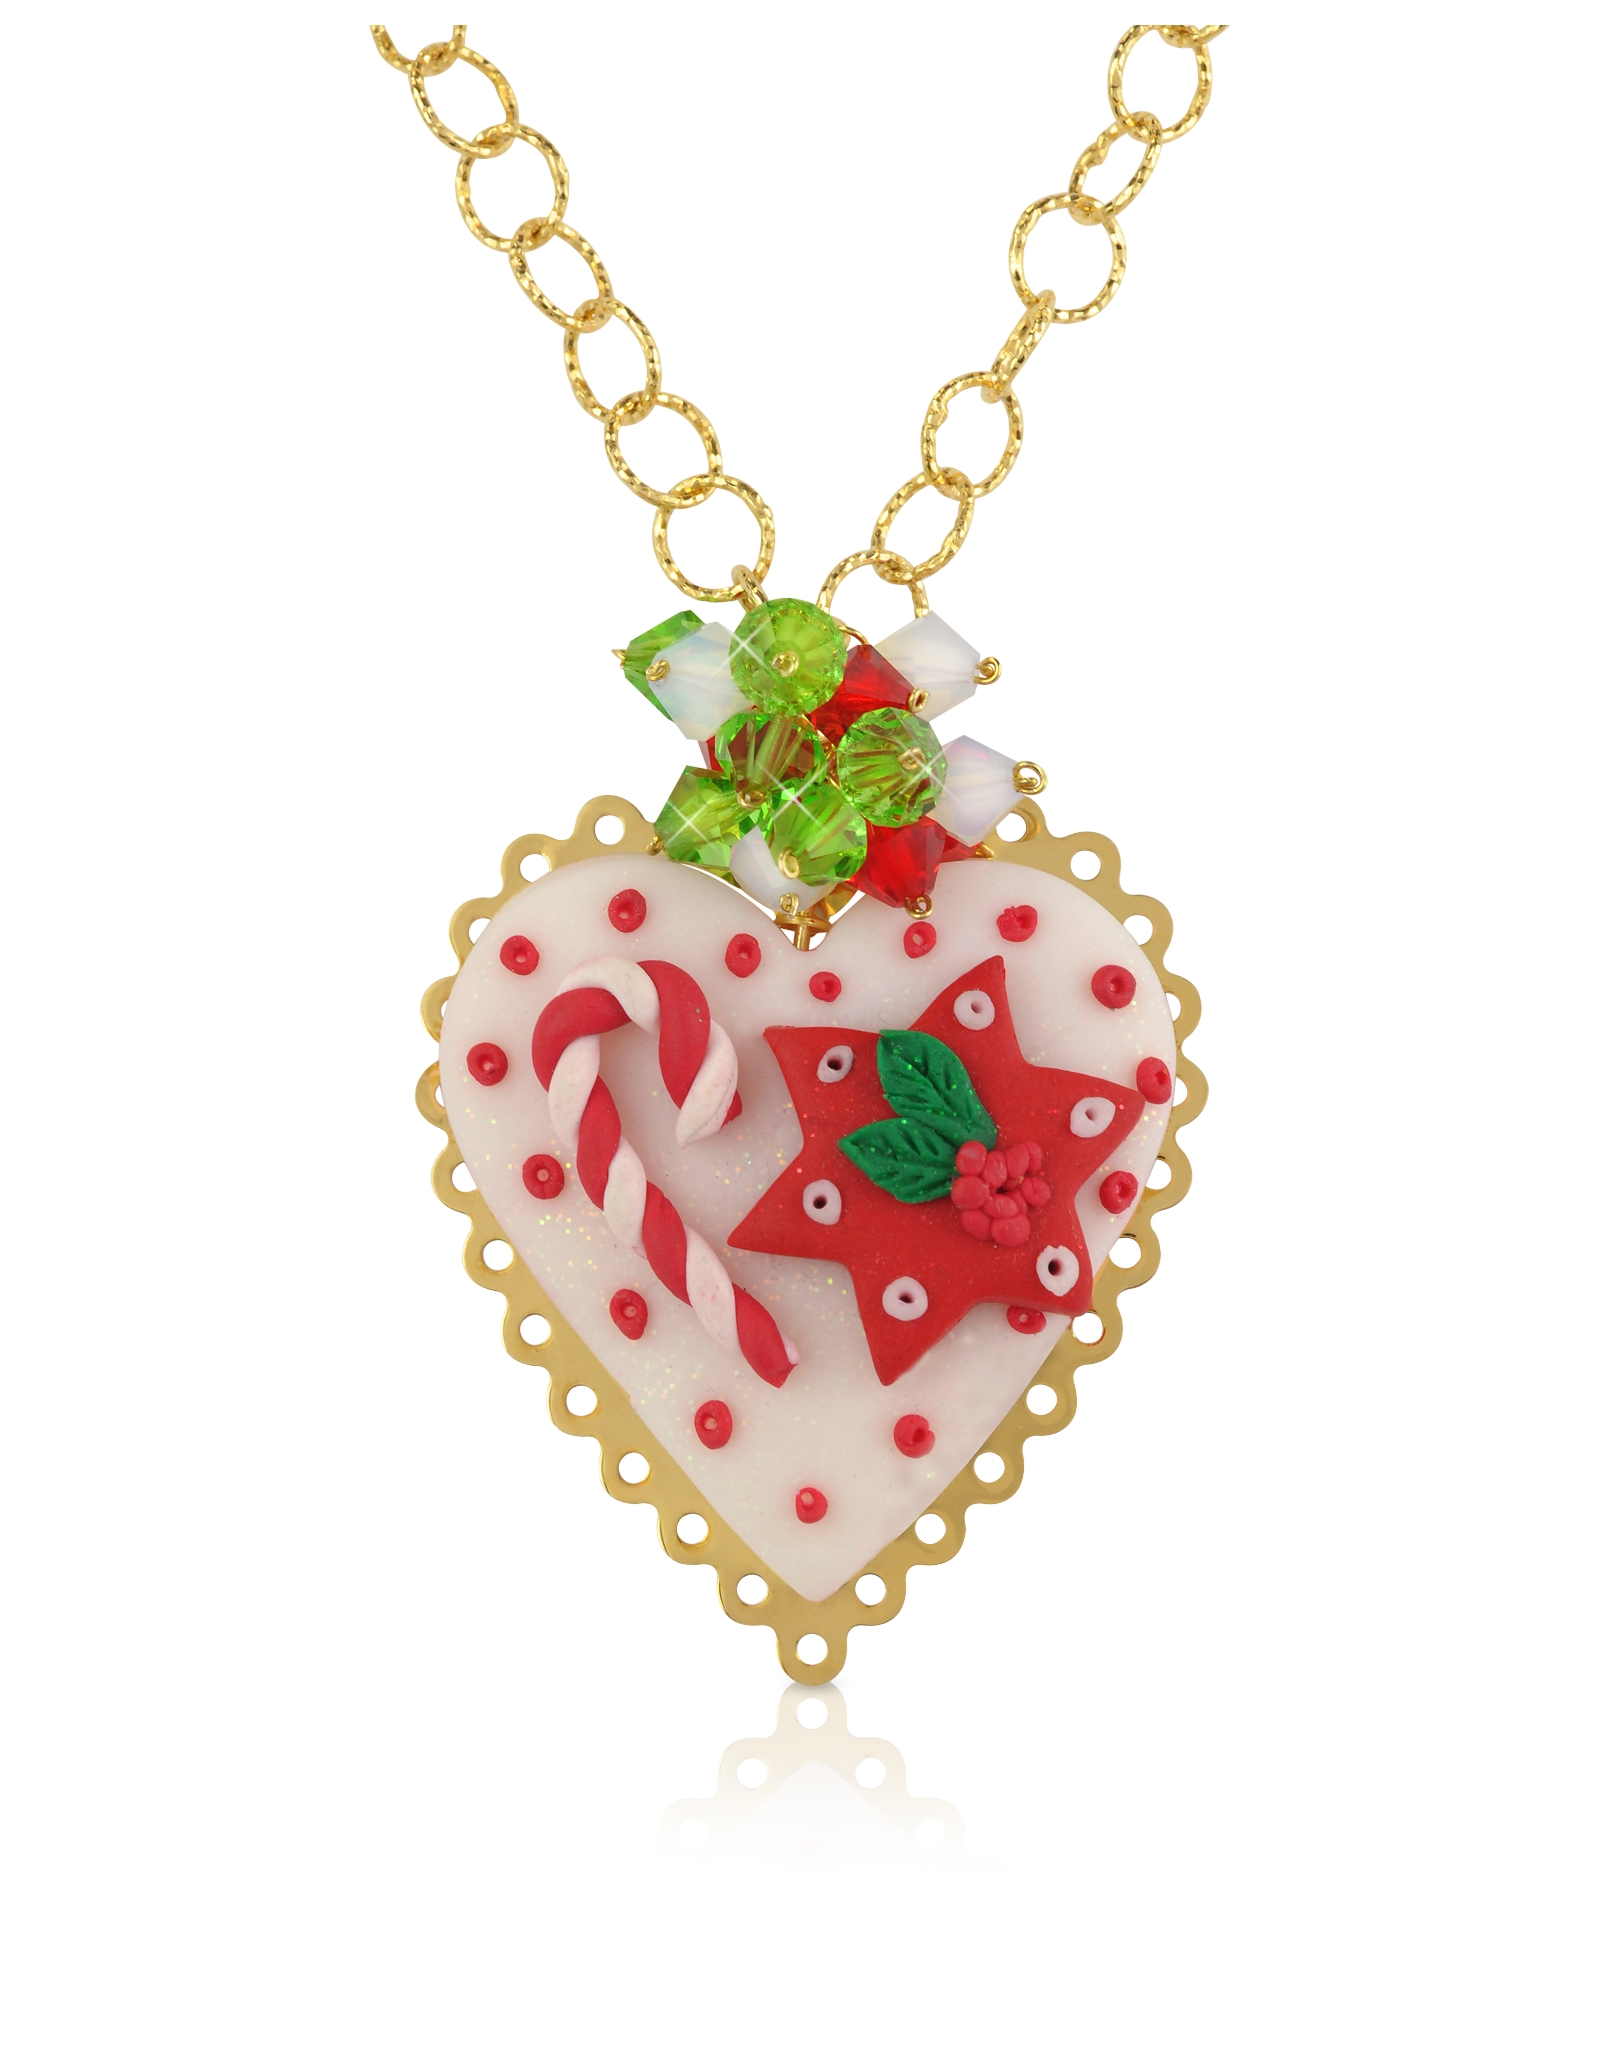 Dolci gioie Christmas Heart Necklace in White